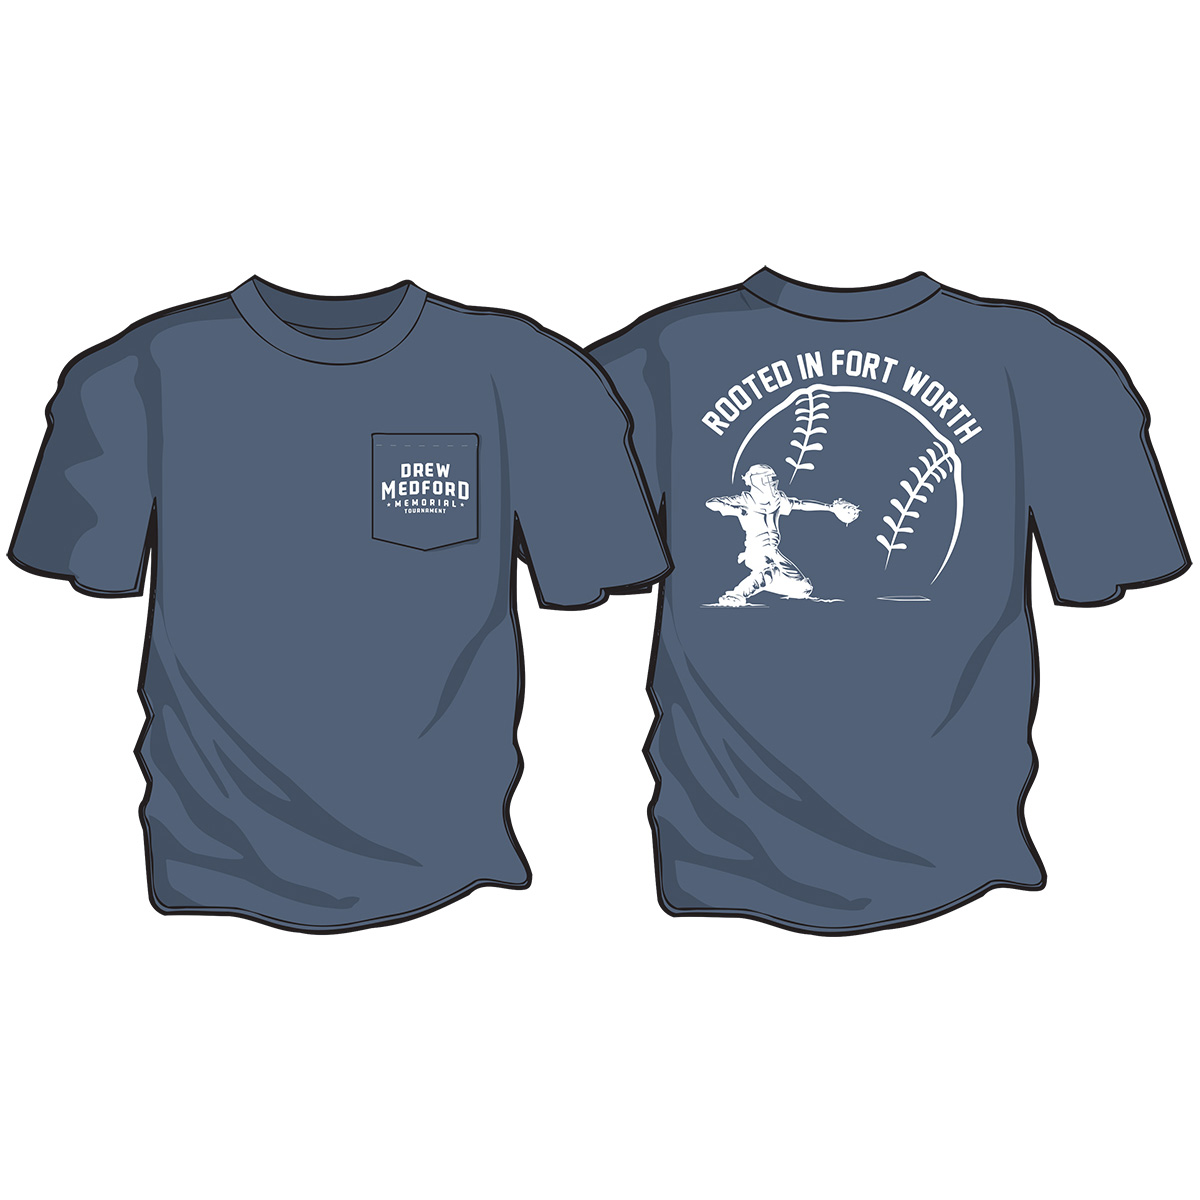 Drew Medford memorial Tournament Blue T-shirt